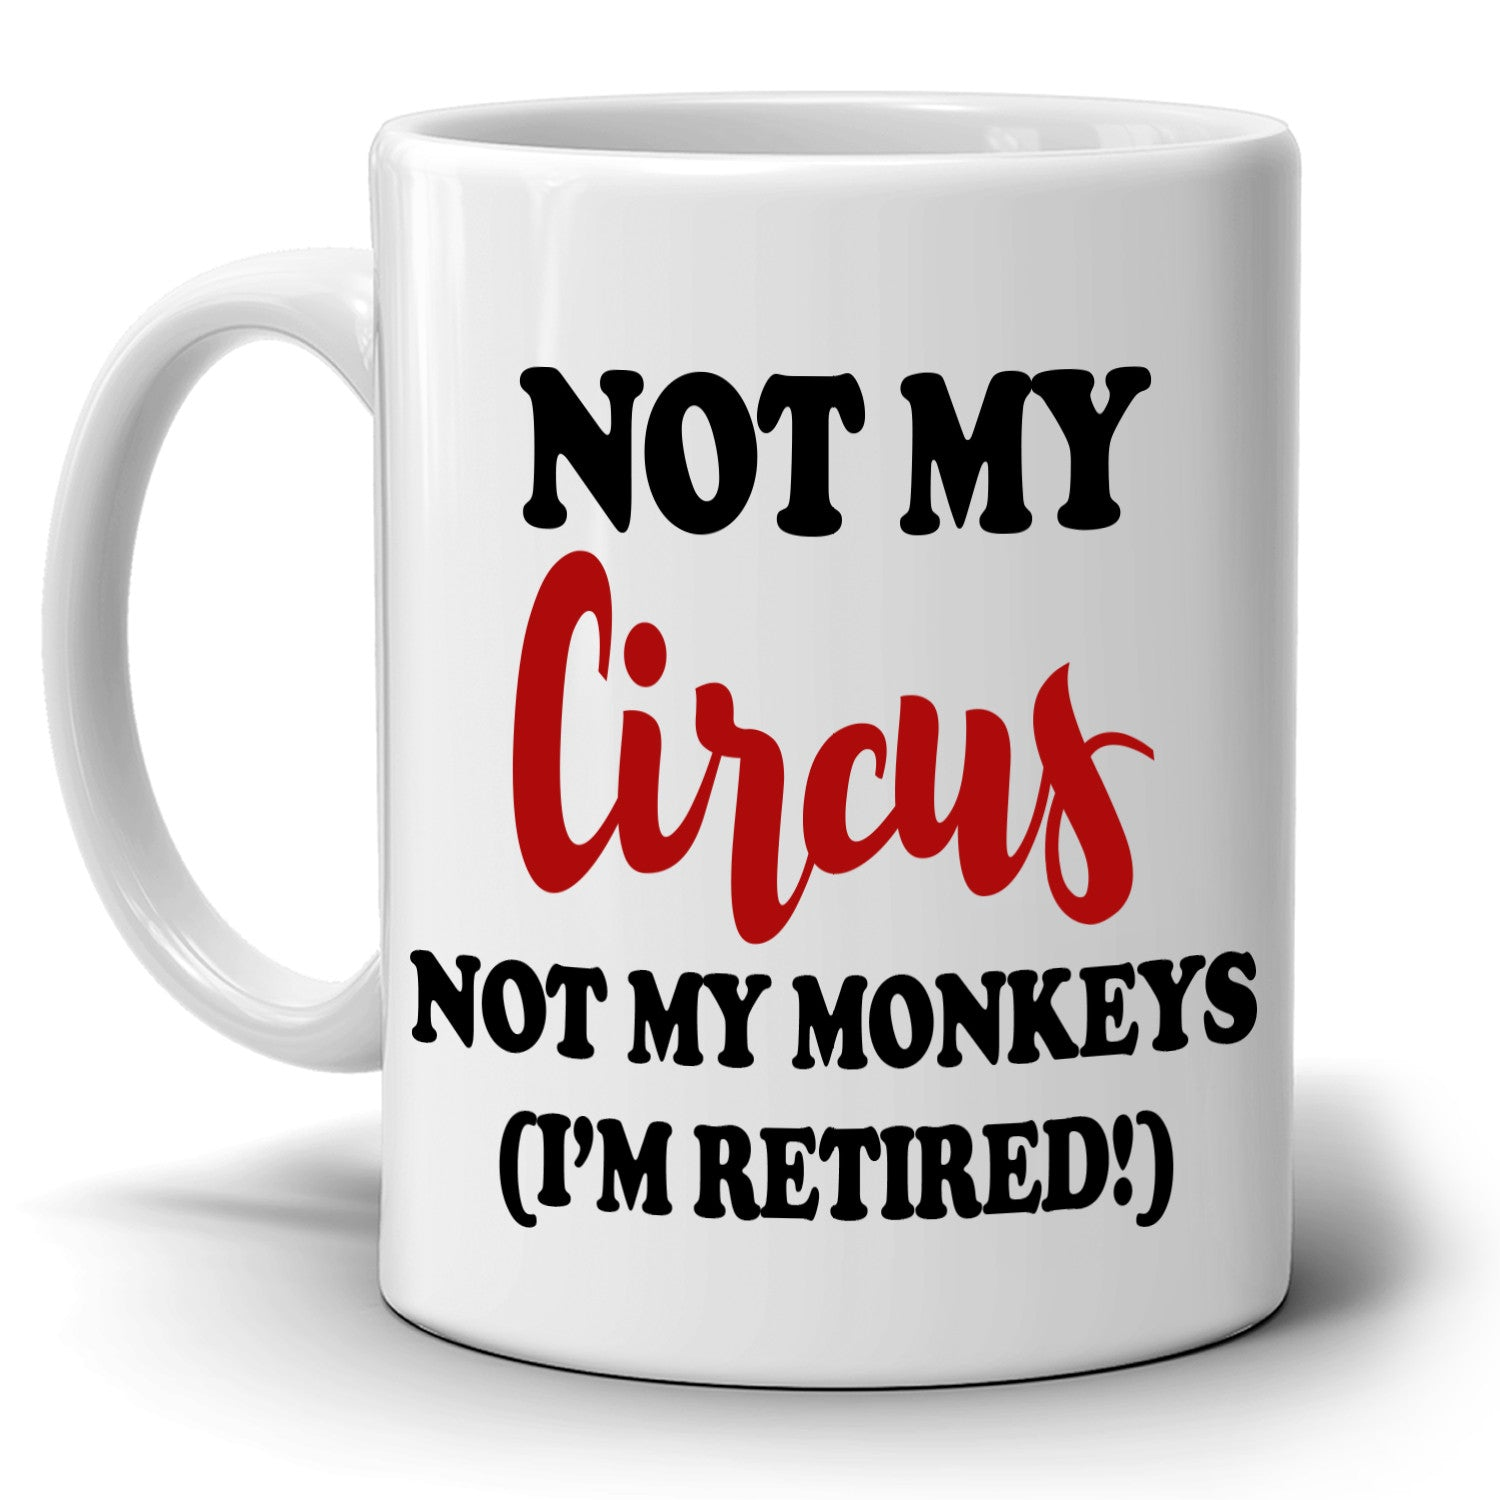 Funny Retirement Gifts Mug For Retirees Not My Circus Not My Monkeys Im Retired Coffee Cup Printed On Both Sides